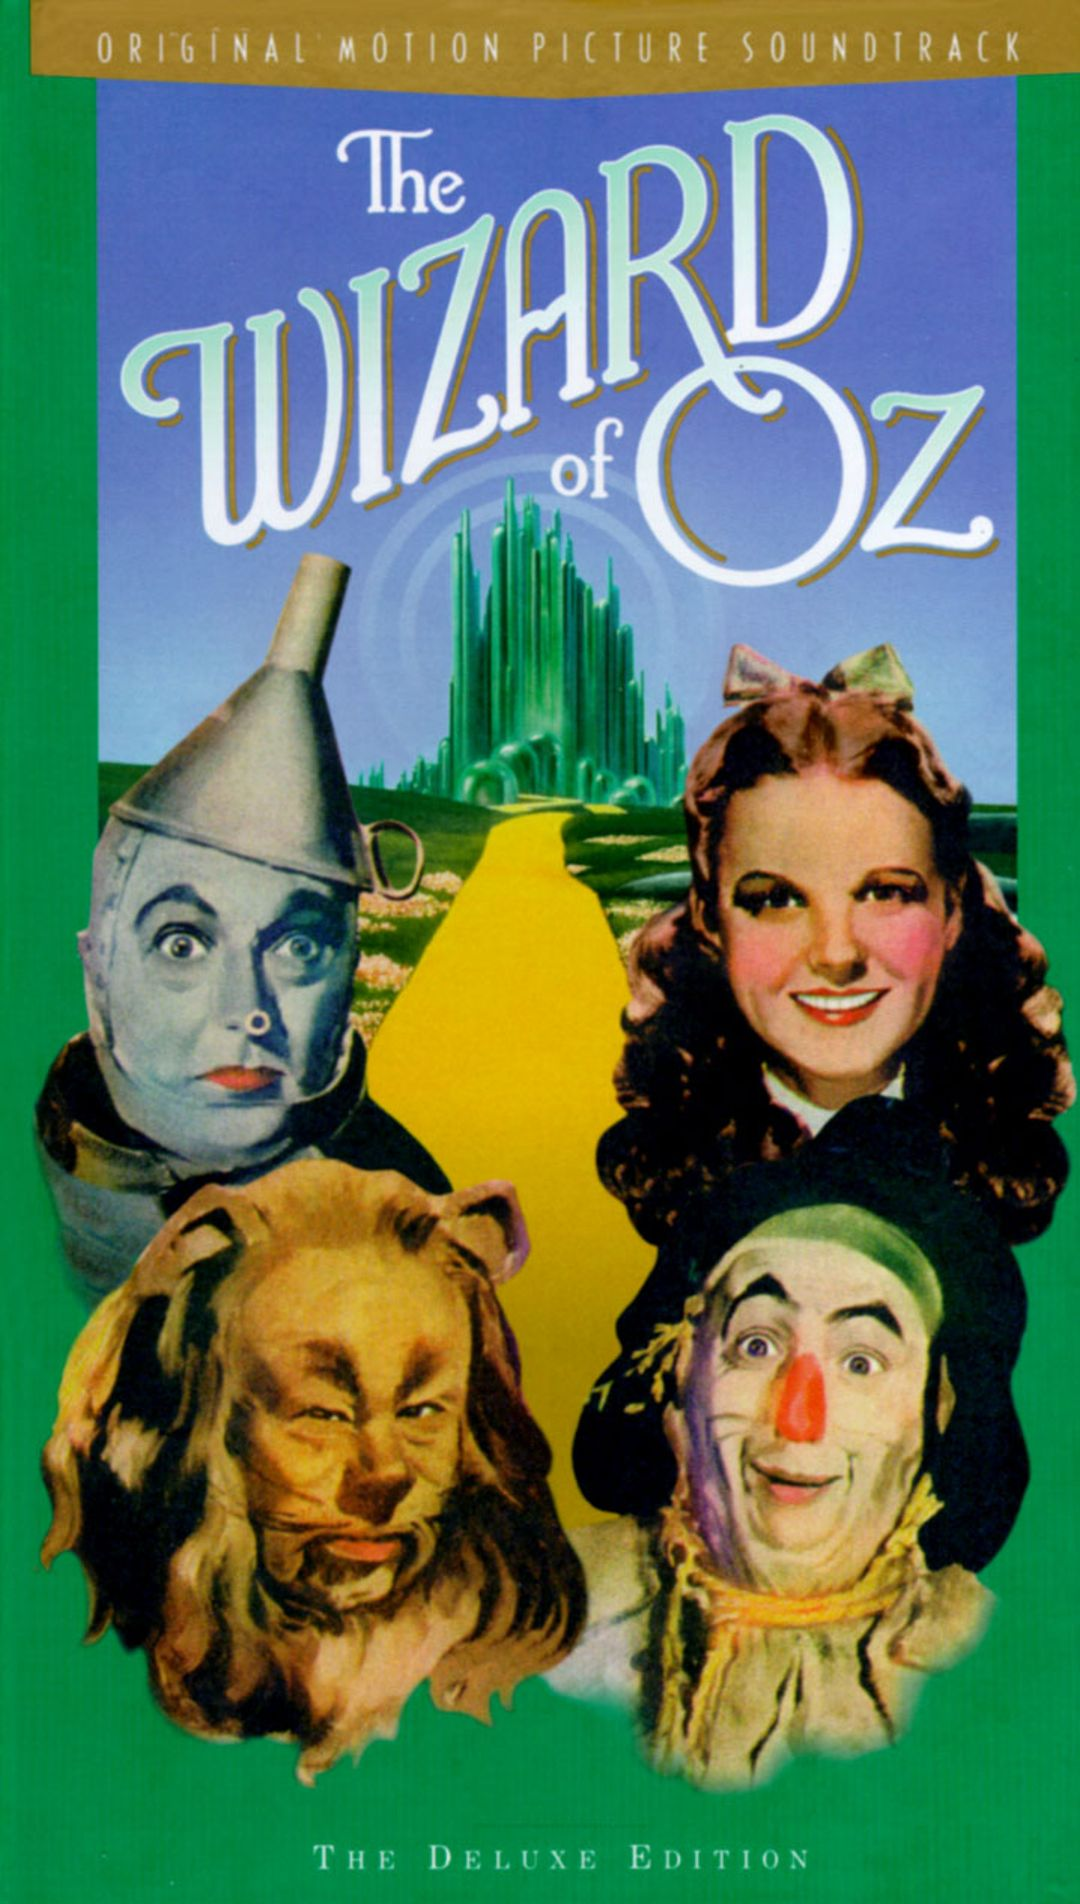 Musical selections in The Wizard of Oz